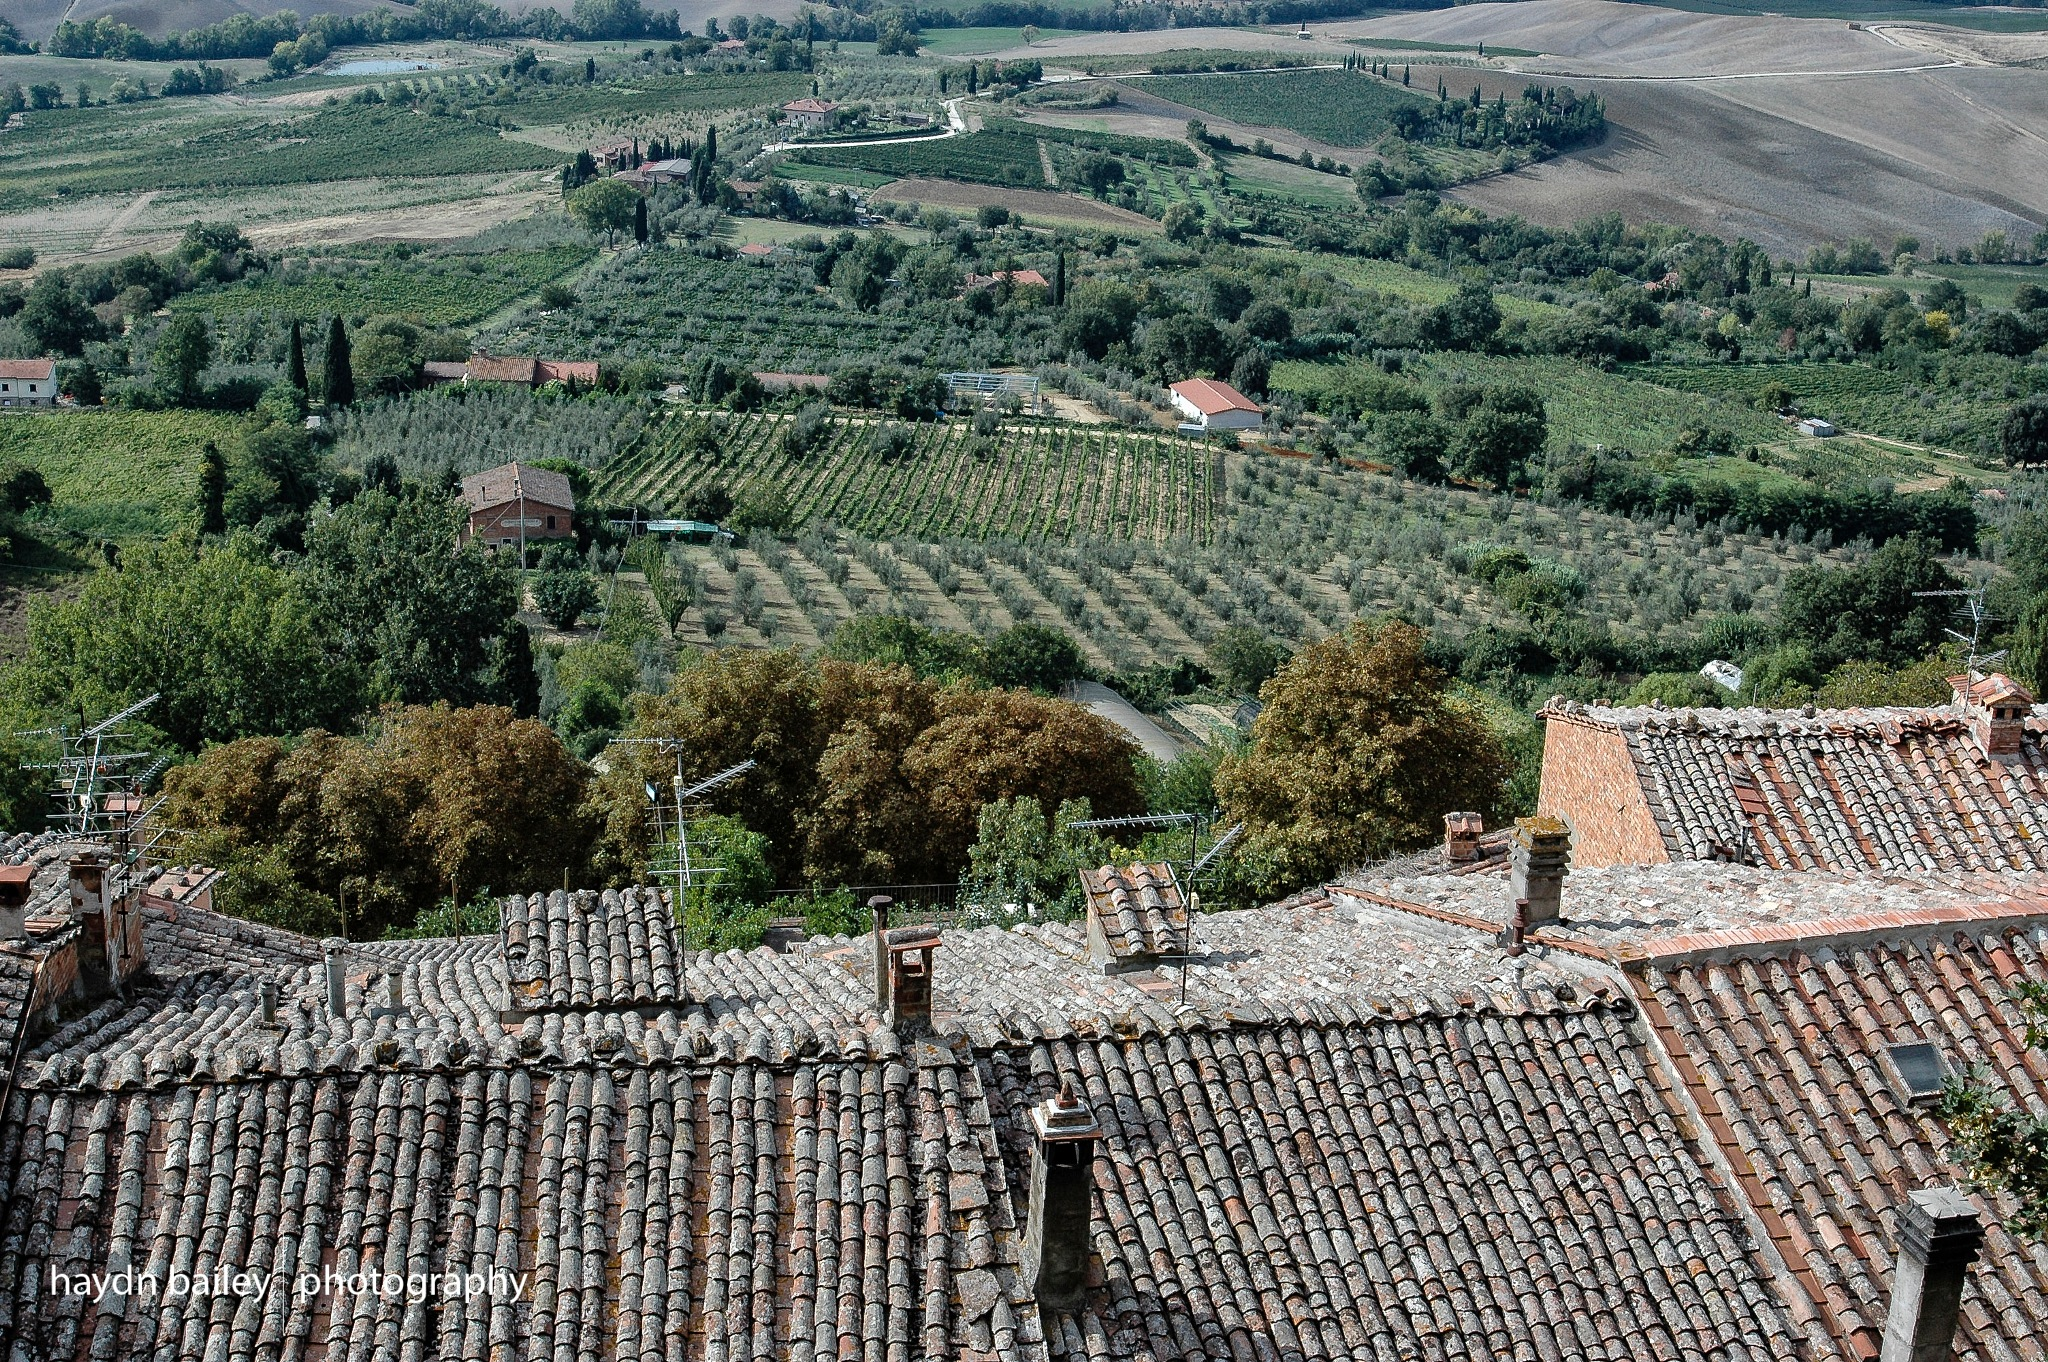 From the rooftops in Tuscany! by Haydn Bailey